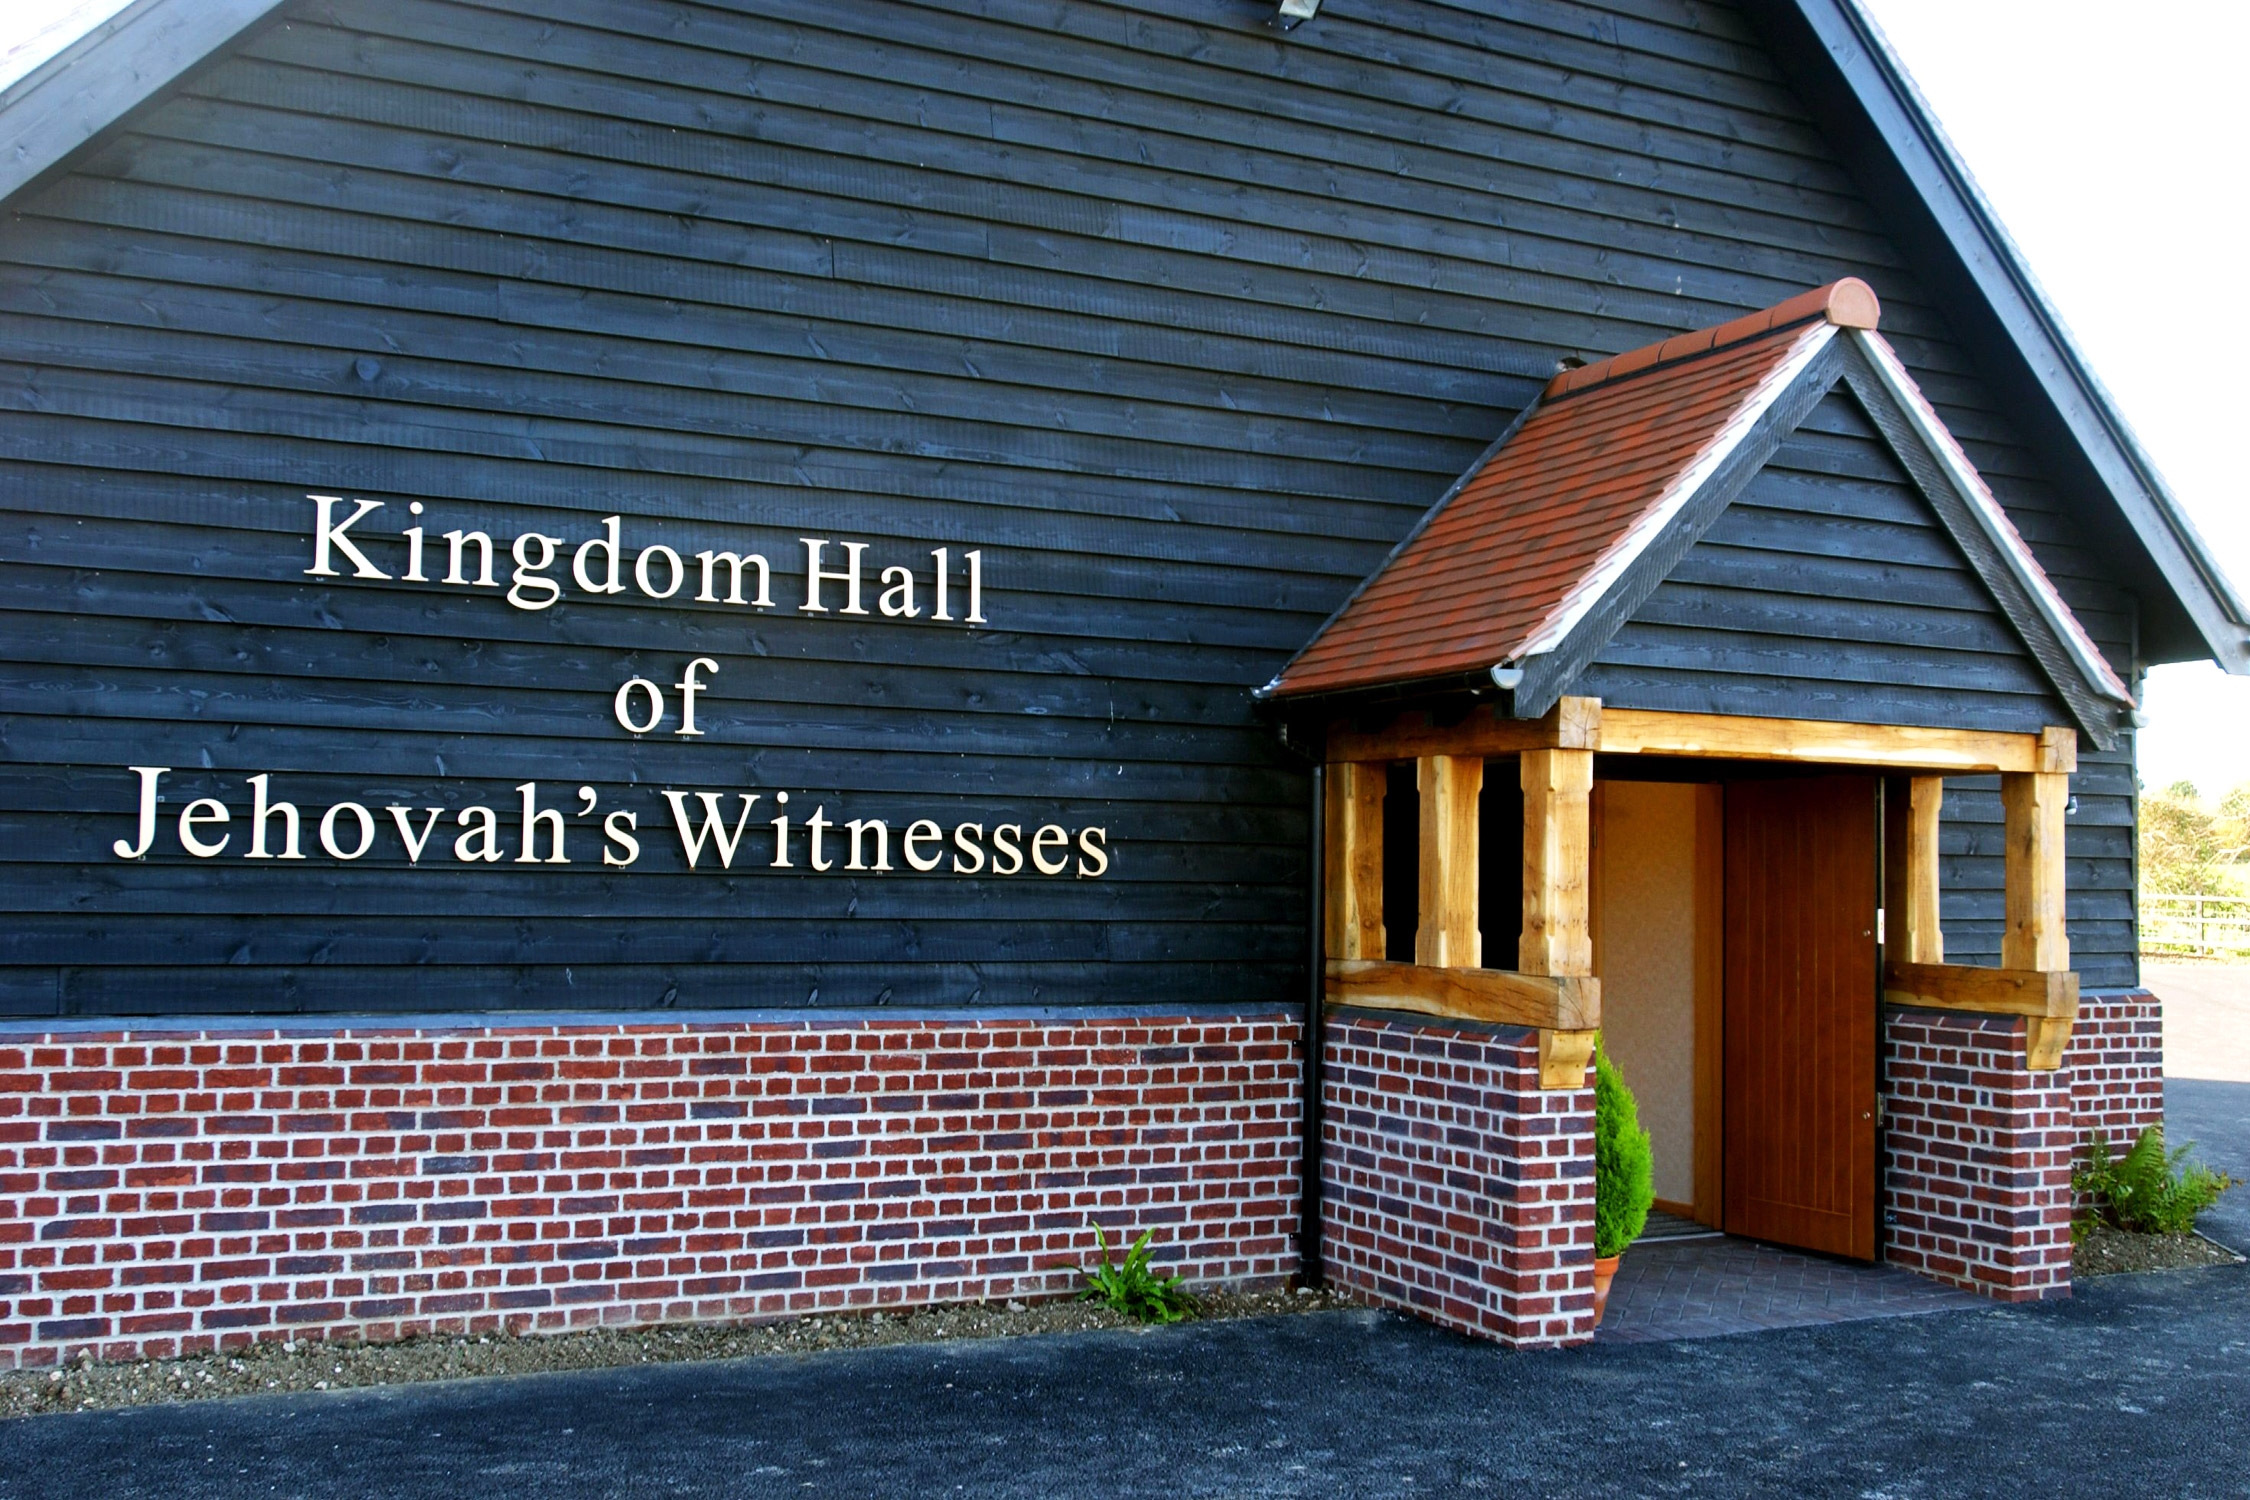 Leaked Documents Expose Alleged Child Sex Abuse In Jehovah's Witnesses Church